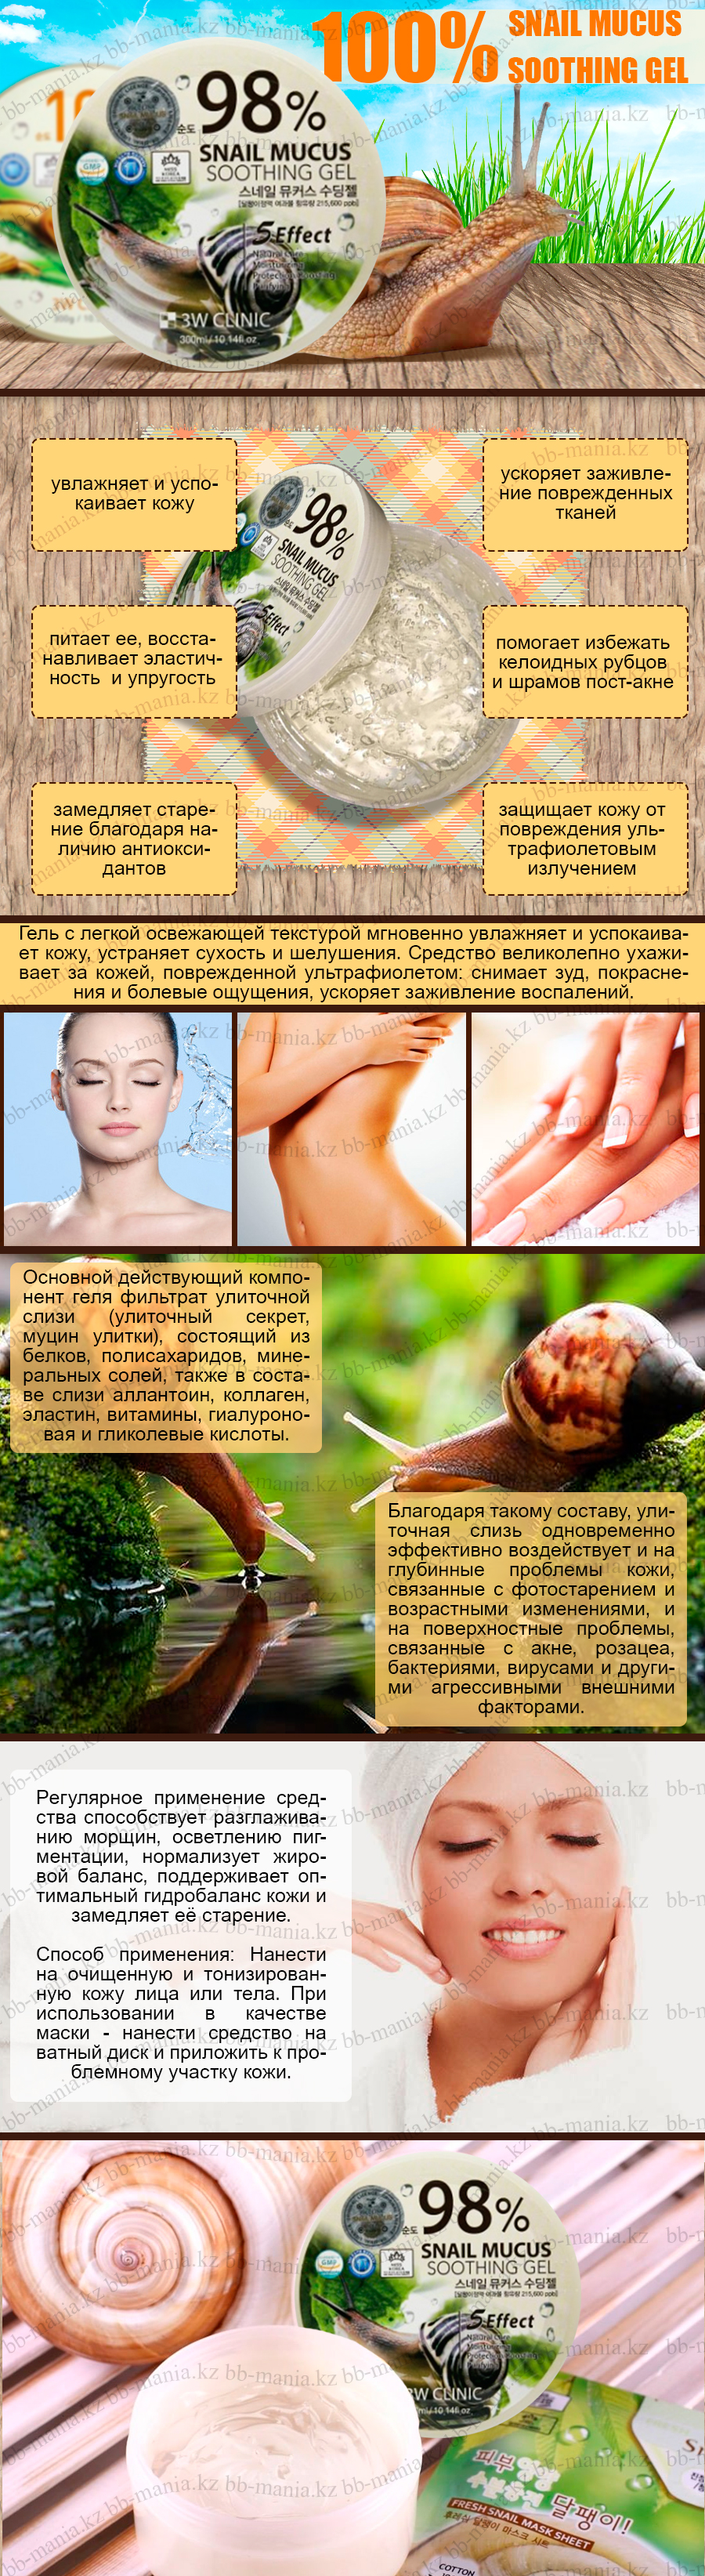 100%-Snail-Mucus-Soothing-Gel-[3W-CLINIC]